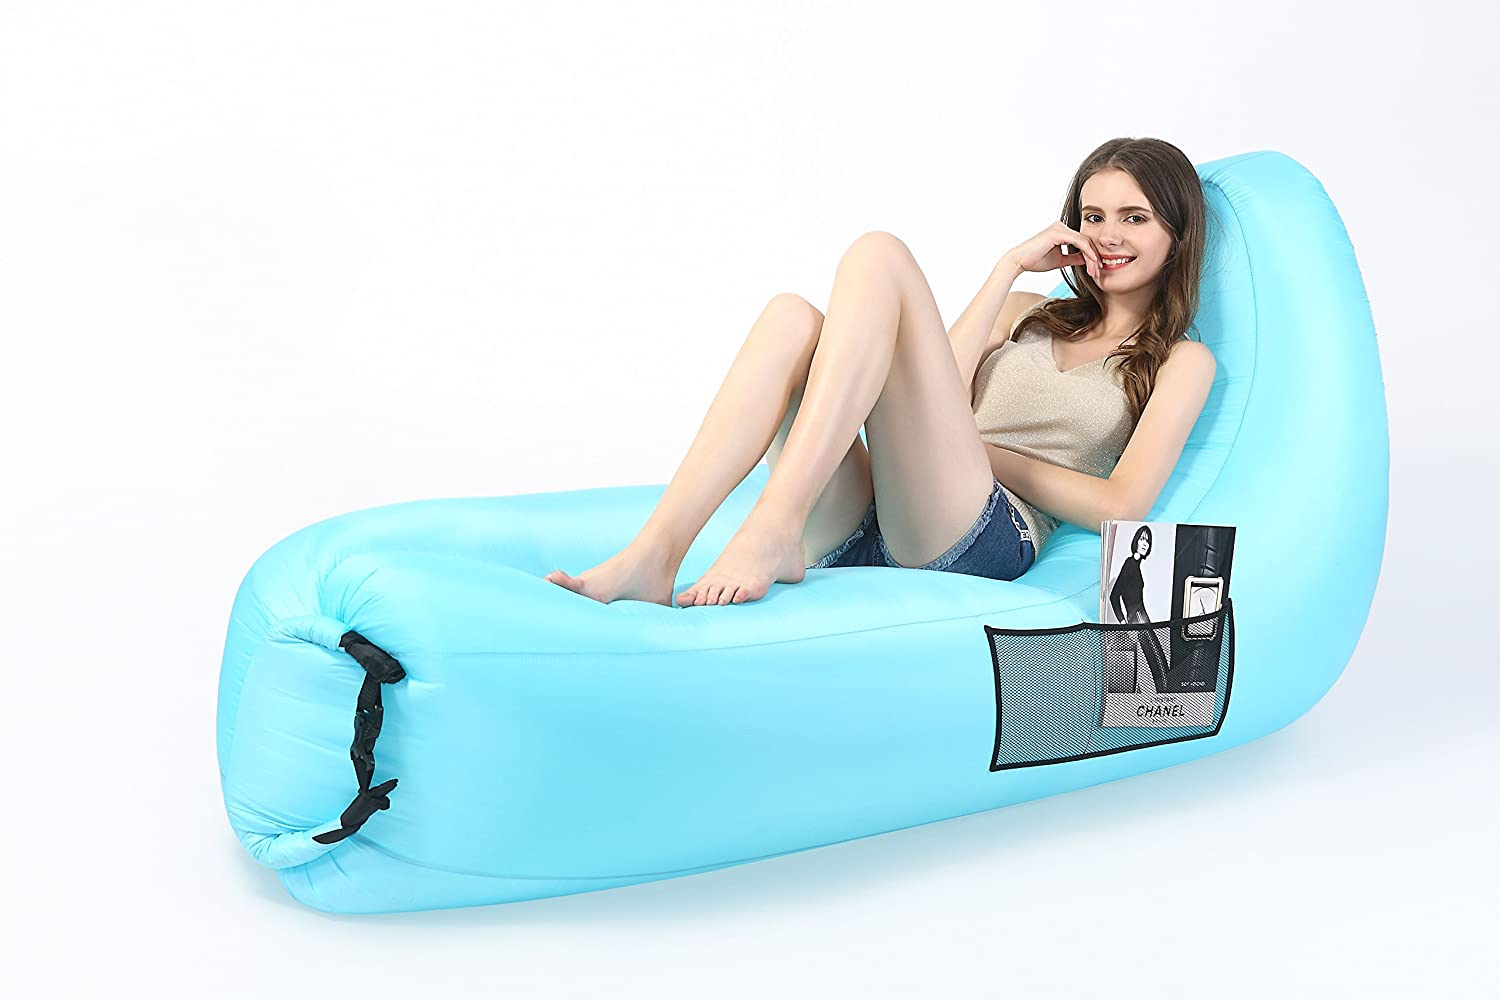 jarferoot Air Inflatable LoungerソファライトブルーAirバッグLounger 210tポリエステル生地のキャンプ、ビーチやプール B0799F45CL